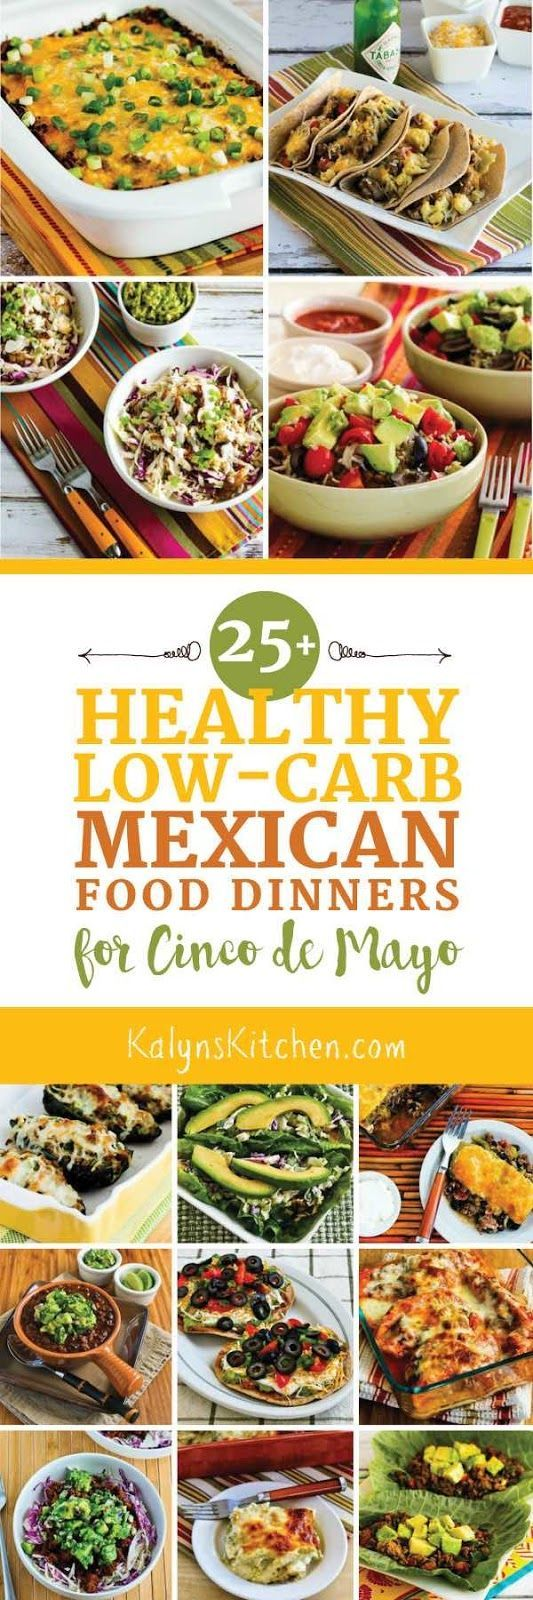 This post has Twenty-Five+ Healthy Low-Carb Mexican Food Dinners for Cinco de Mayo, or any time you get that craving for Mexican Food! The post also includes a collection of other Mexican food recipes that are carb-conscious but a bit higher in carbs because they have beans. All my favorite Mexican food recipes for every diet type, found in one spot! [Found on KalynsKitchen.com]